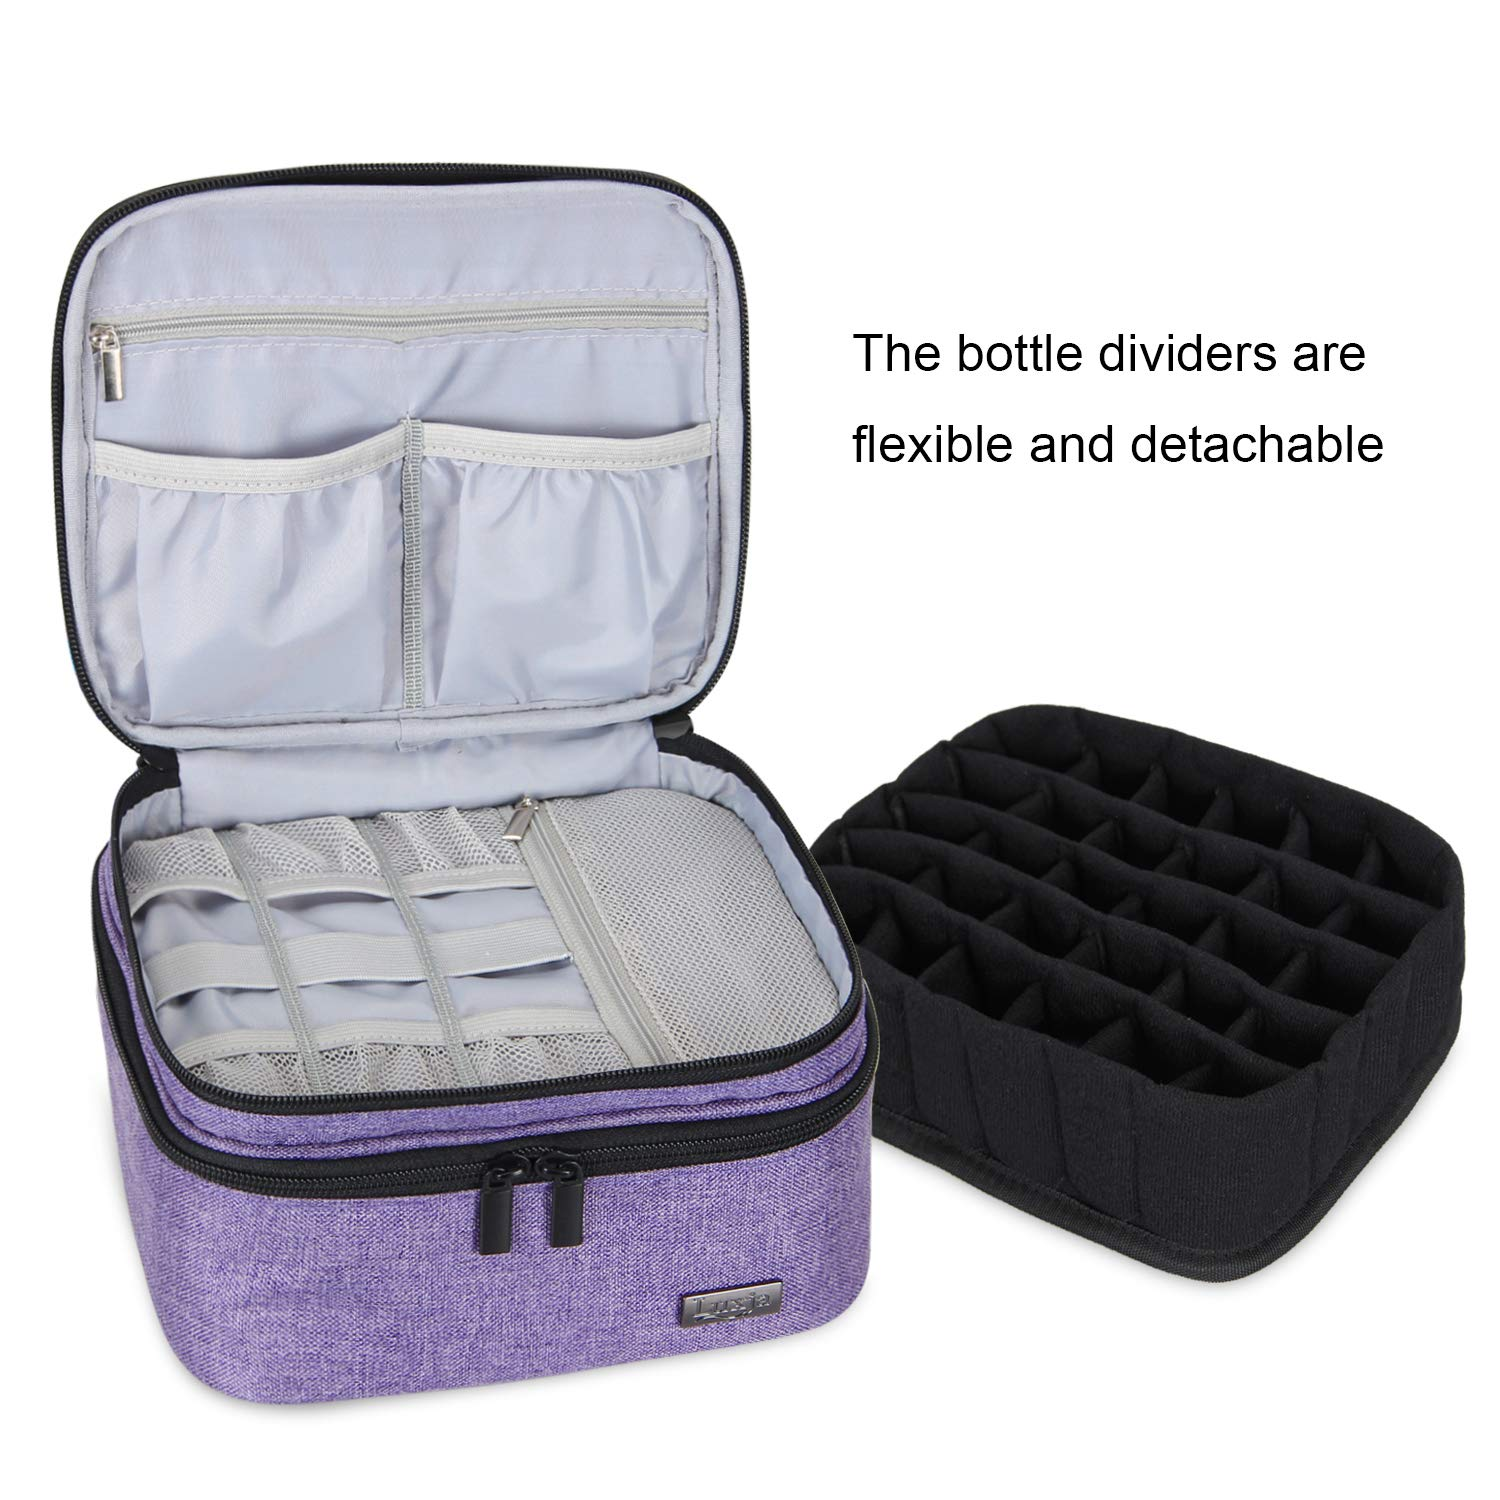 LUXJA Essential Oil Carrying Case - Holds 30 Bottles (5ml-30ml, Also Fits for Roller Bottles), Double-Layer Organizer for Essential Oil and ...